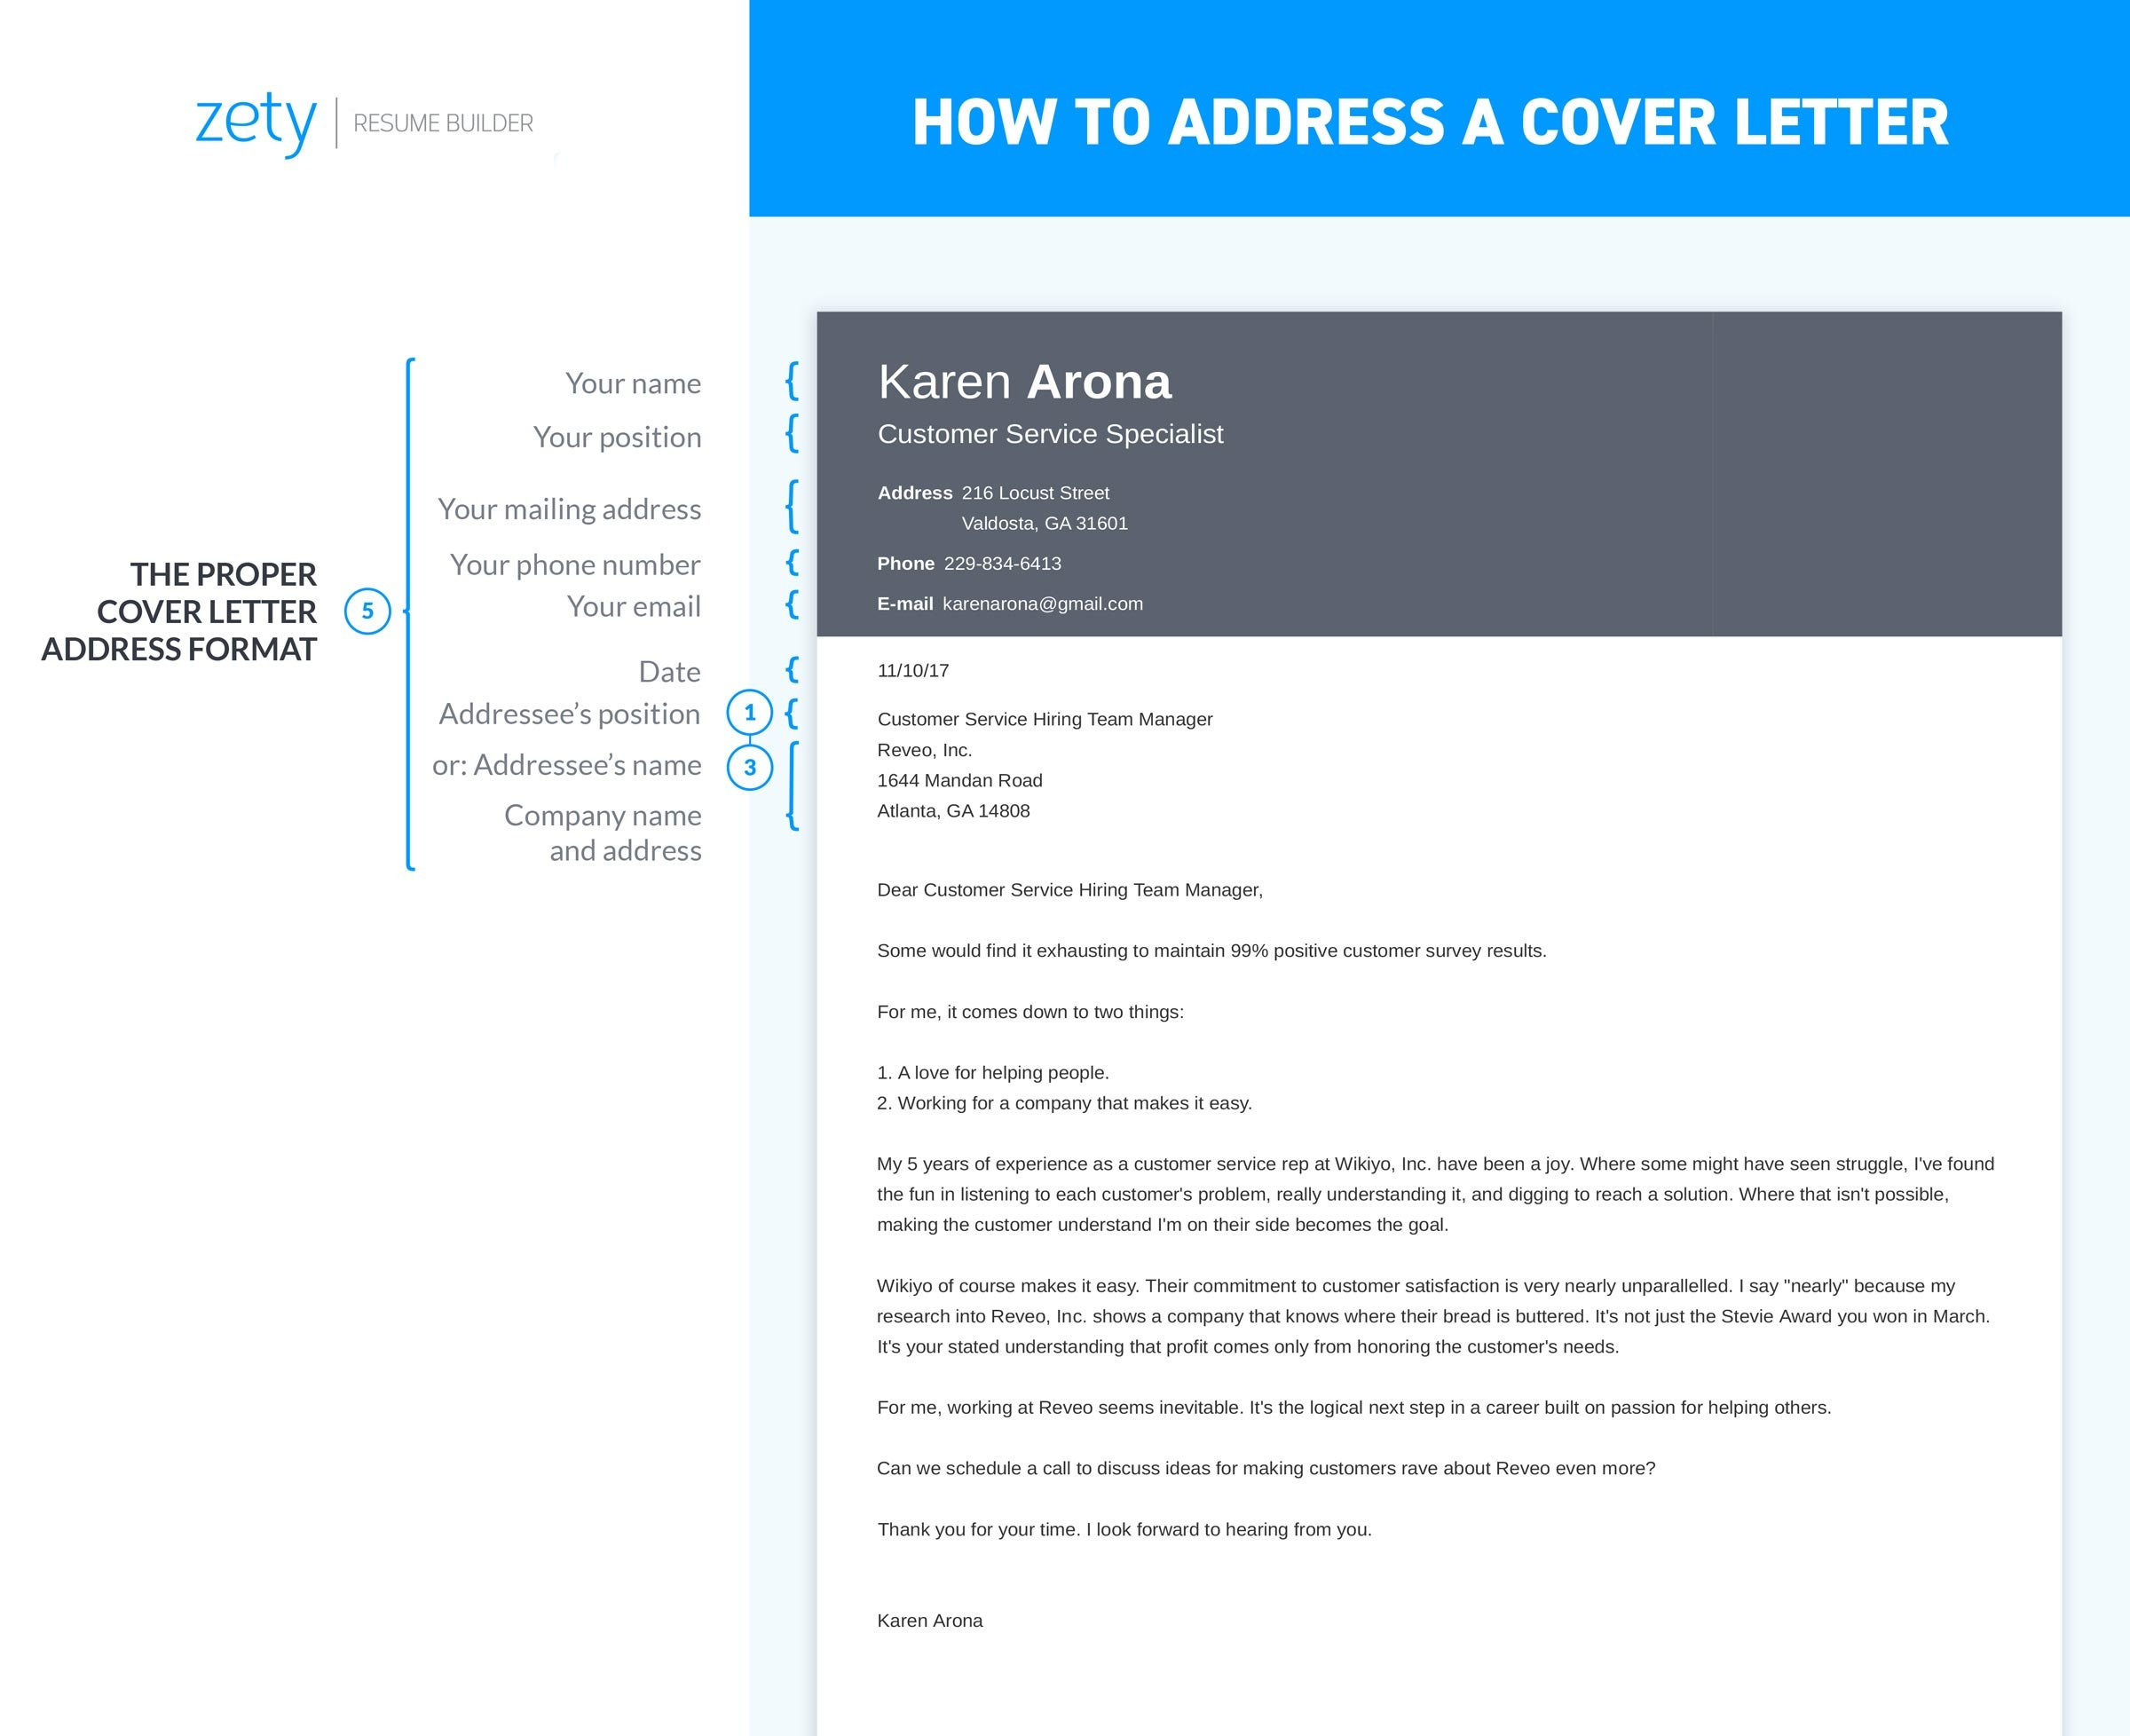 infographic about how to address a cover letter